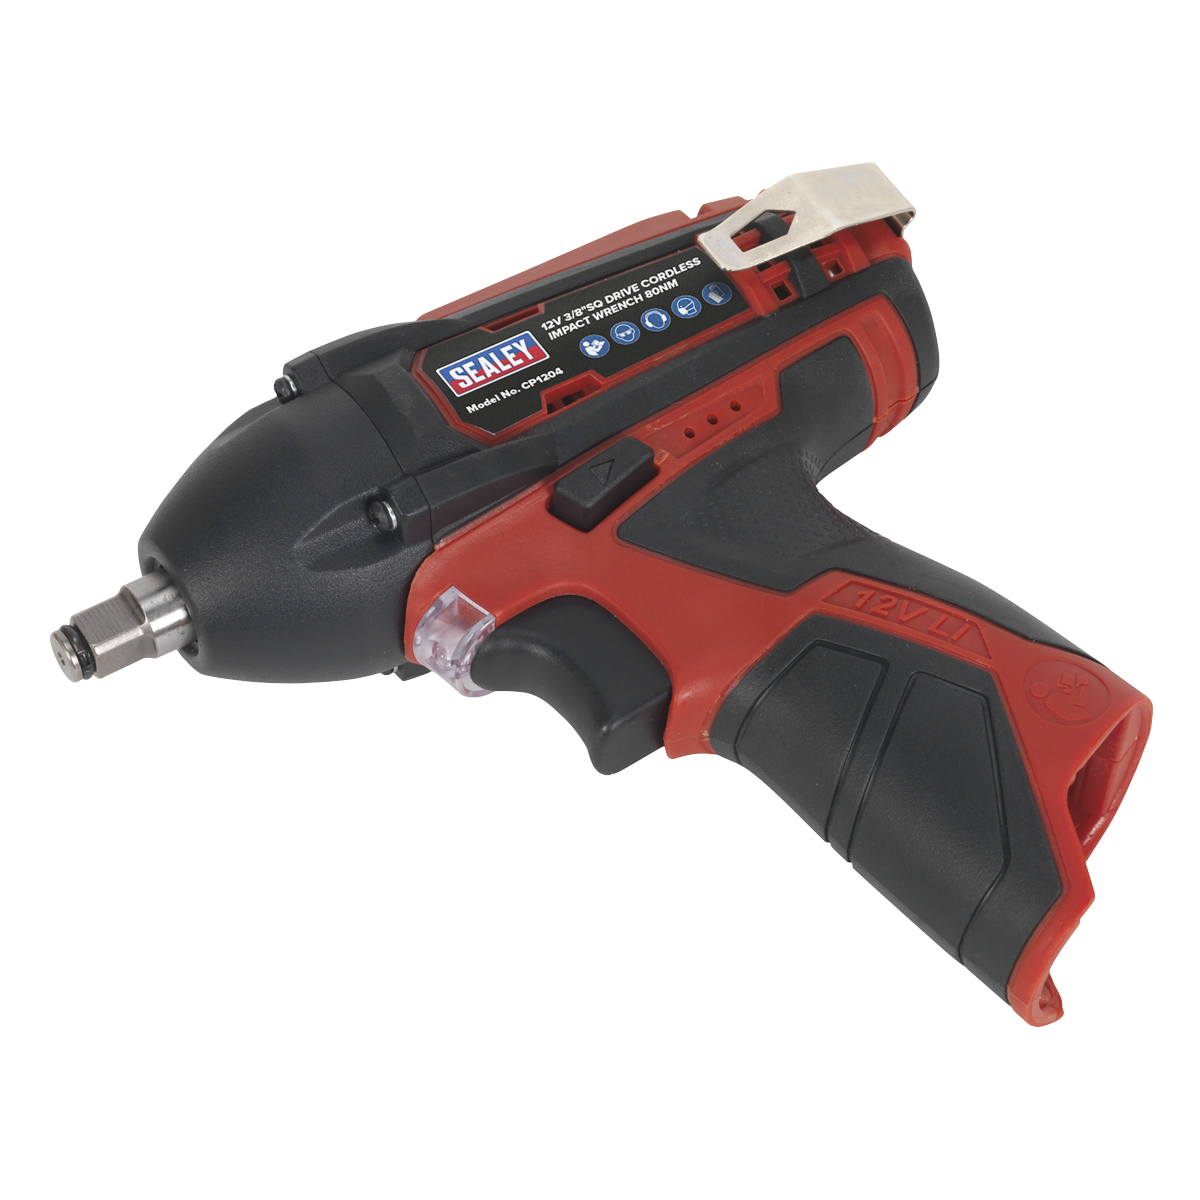 """Cordless Impact Wrench 3/8""""Sq Drive 80Nm 12V Lithium-ion - Body Only"""